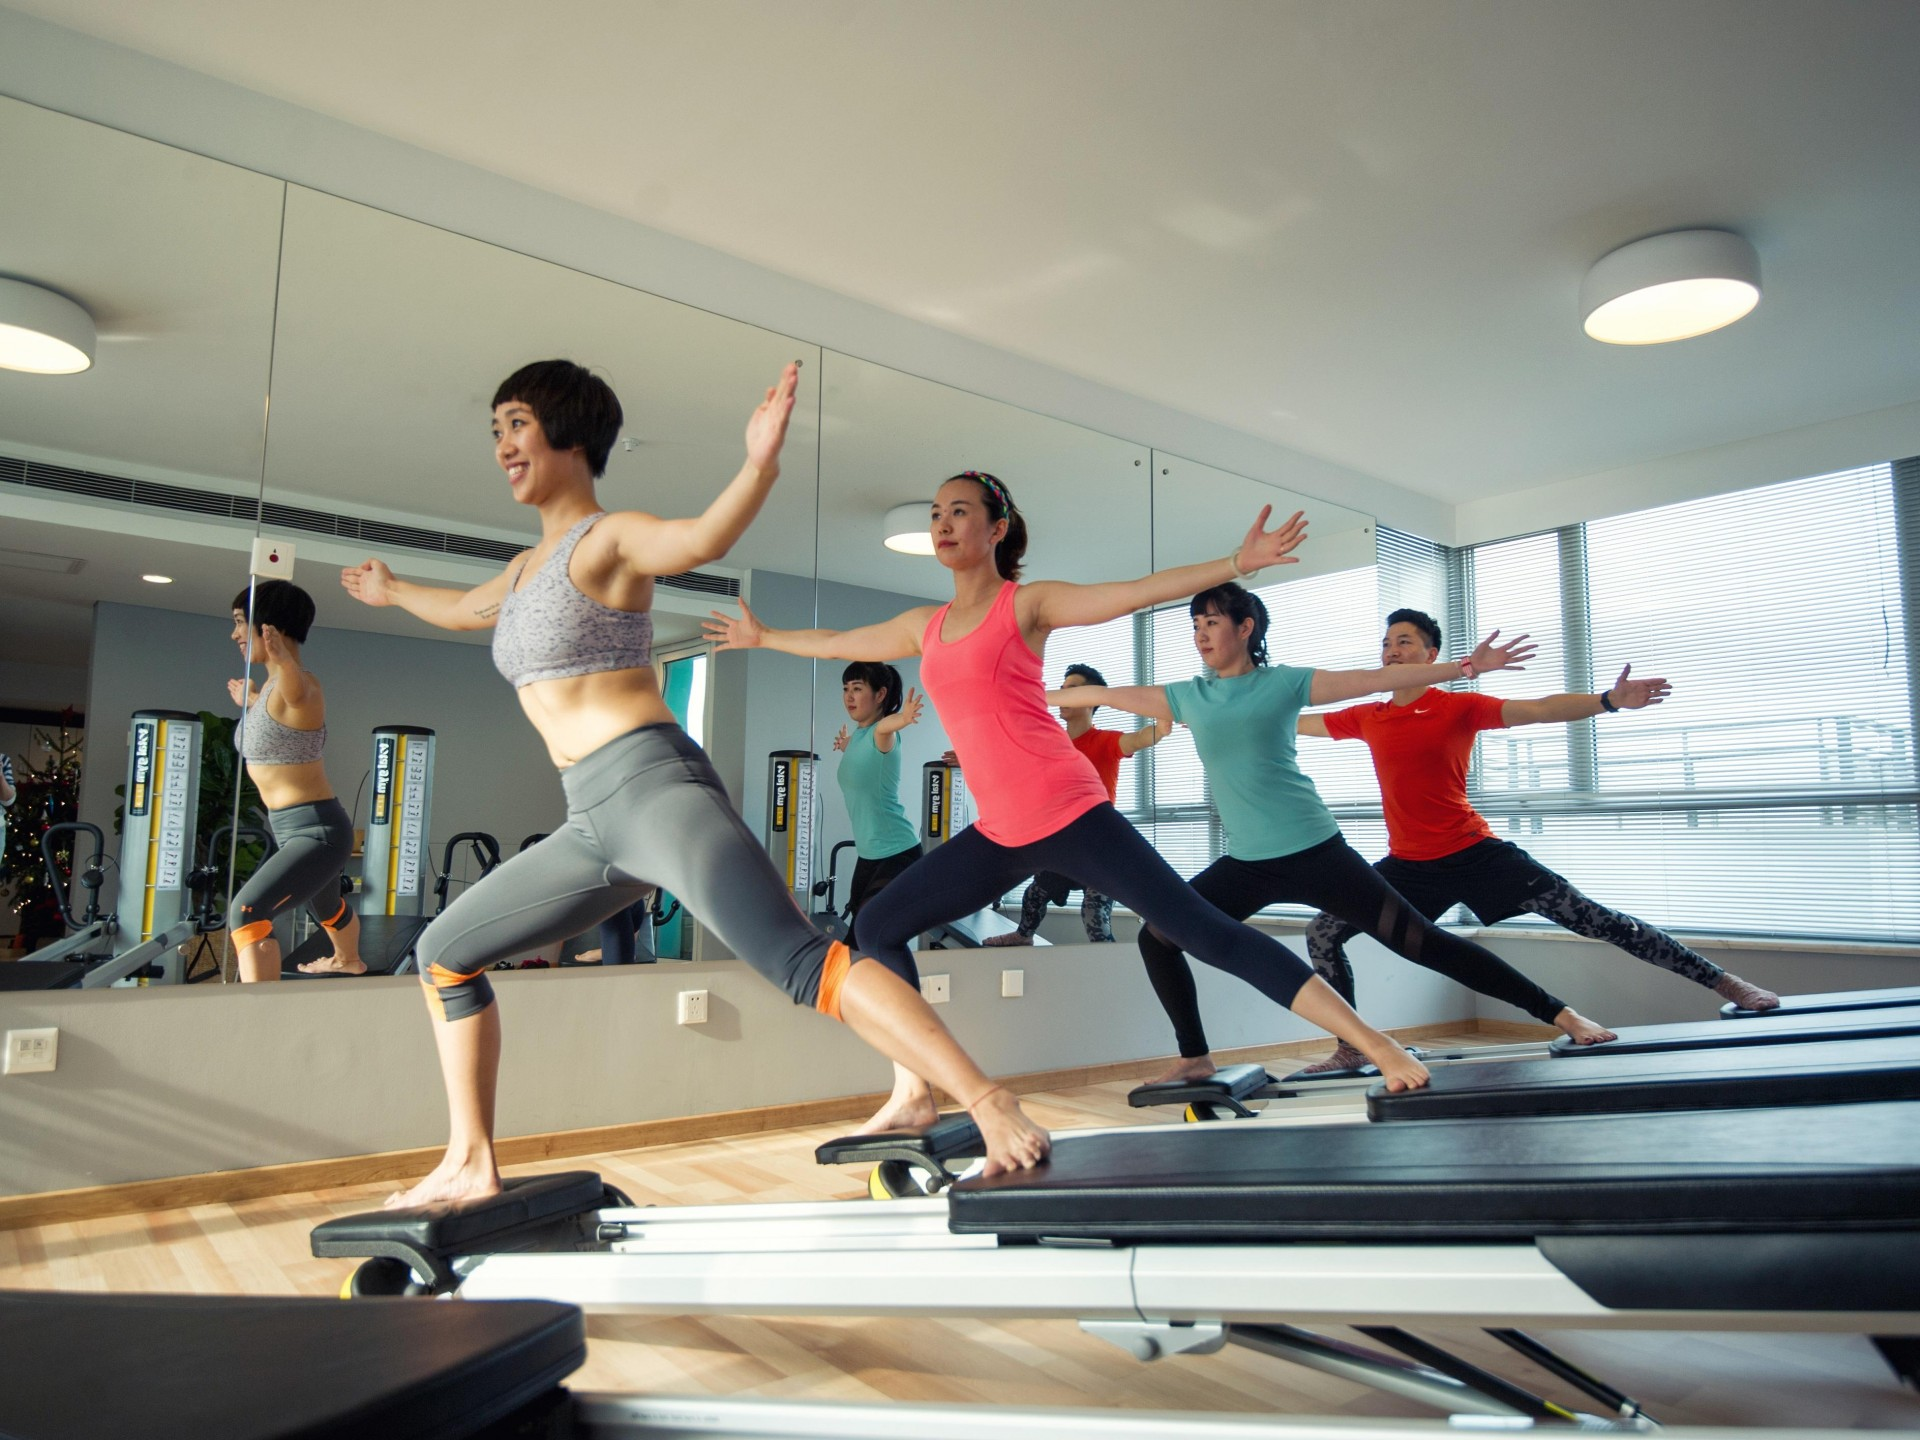 GET INTO THE PILATES REVOLUTION WITH THIS MULTI-SITE OPERATION